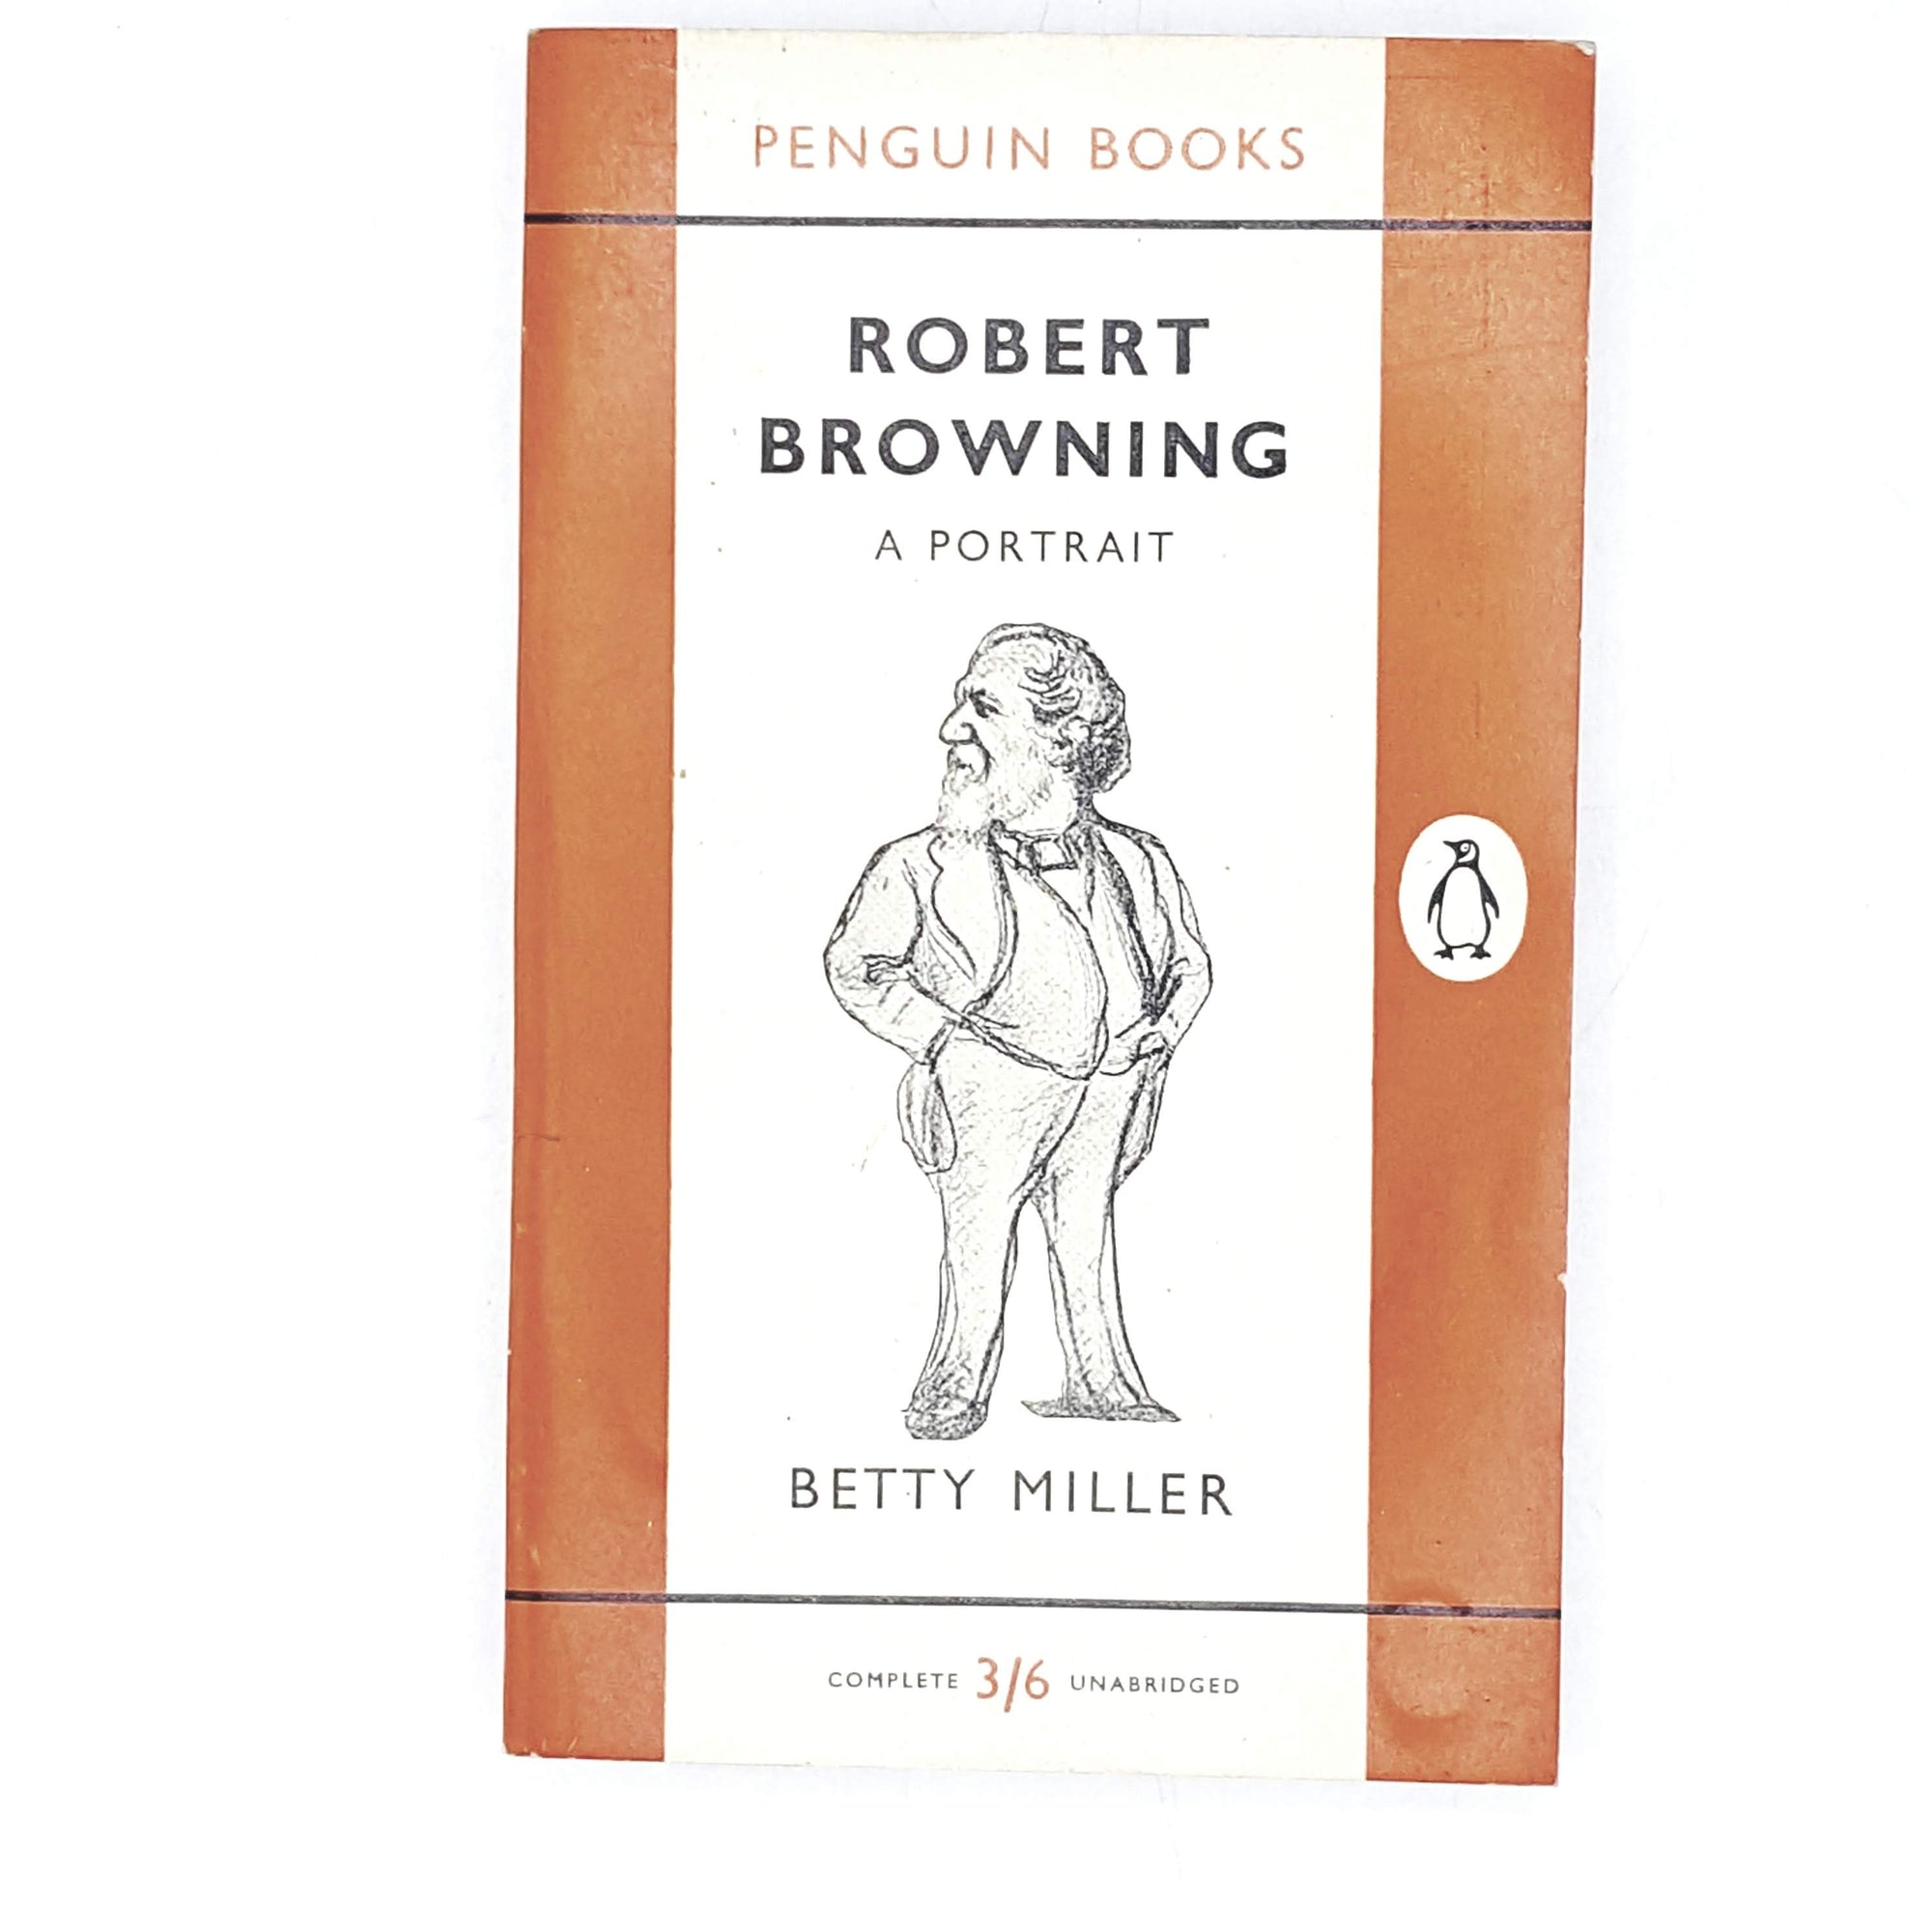 Vintage Penguin Robert Browning: A Portrait by Betty Miller 1958